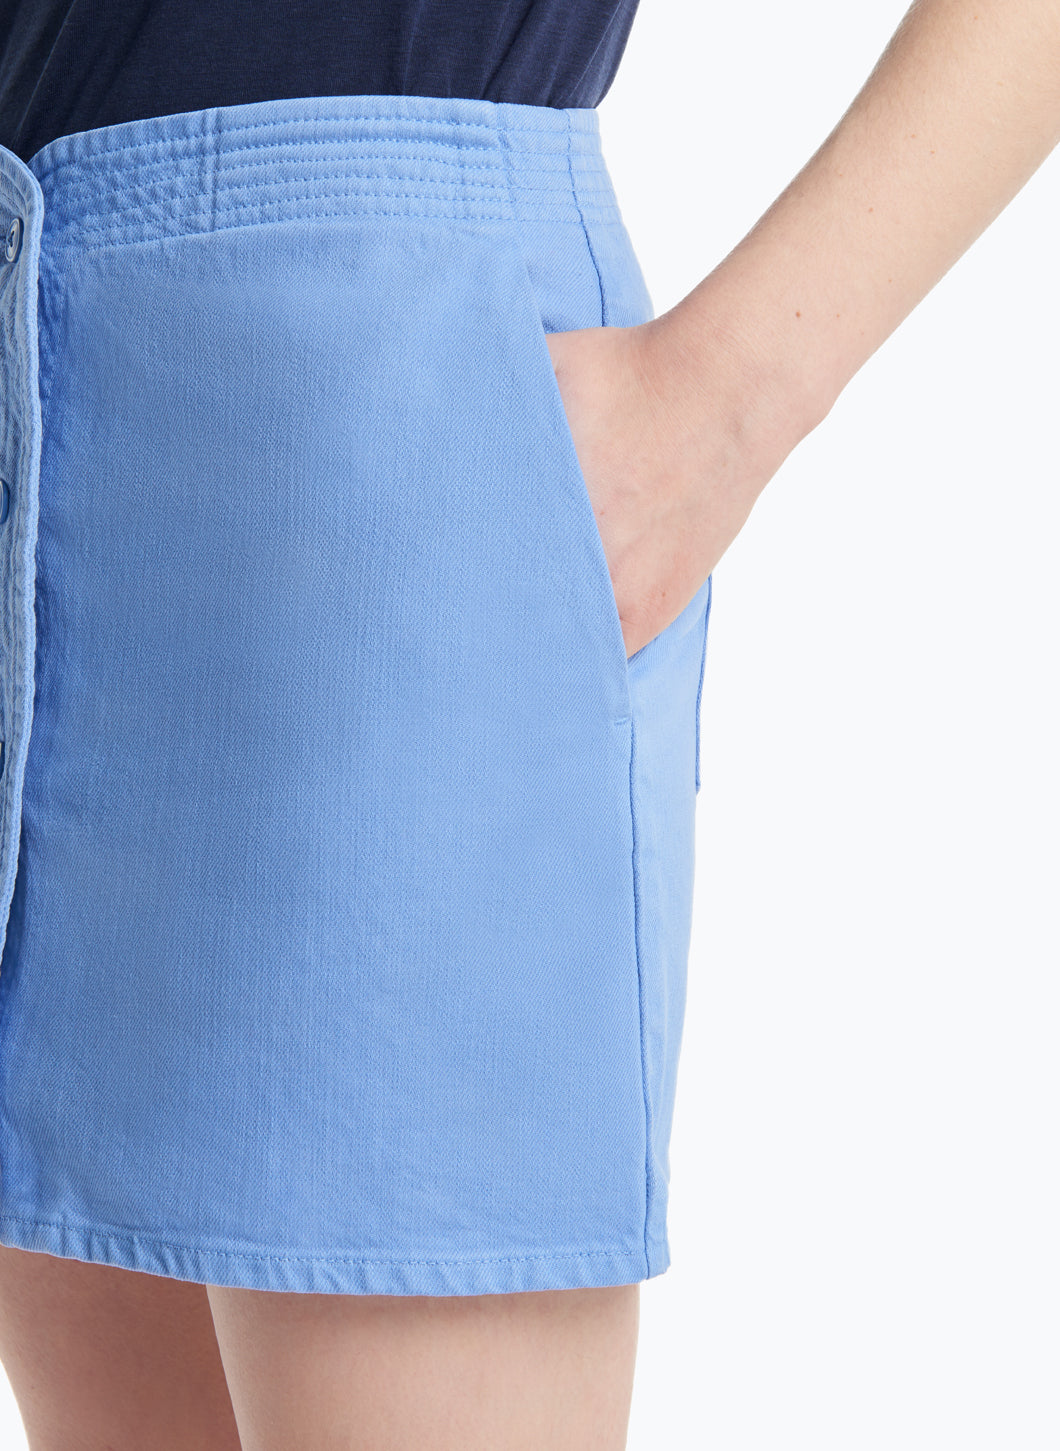 Judo Miniskirt in Light Blue Denim